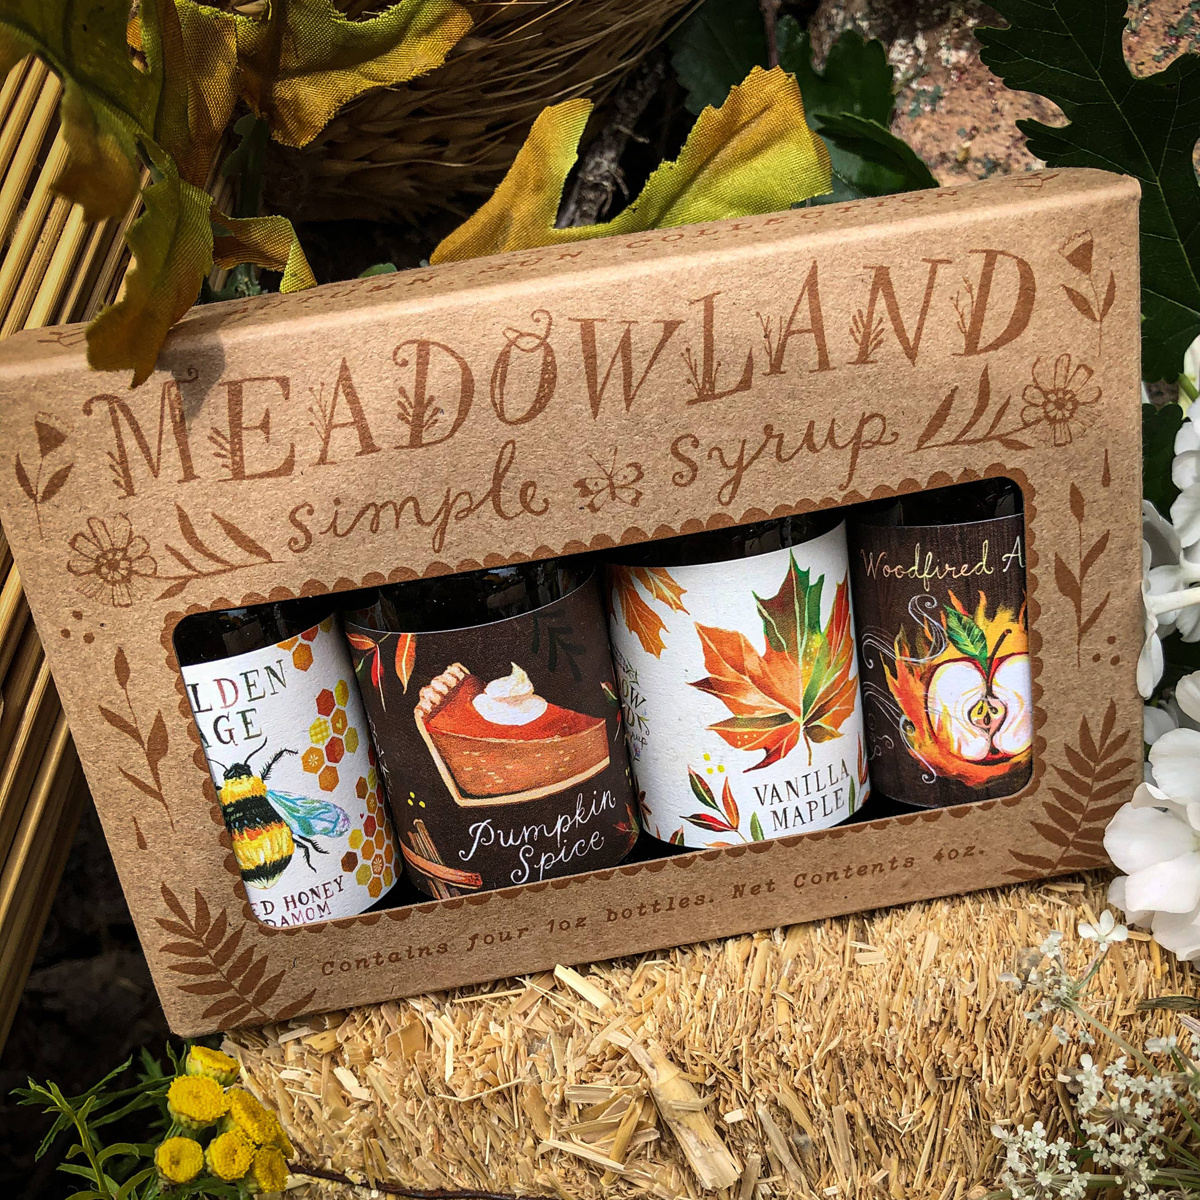 Meadowland - MEA Autumn Sun Simple Syrup Collection